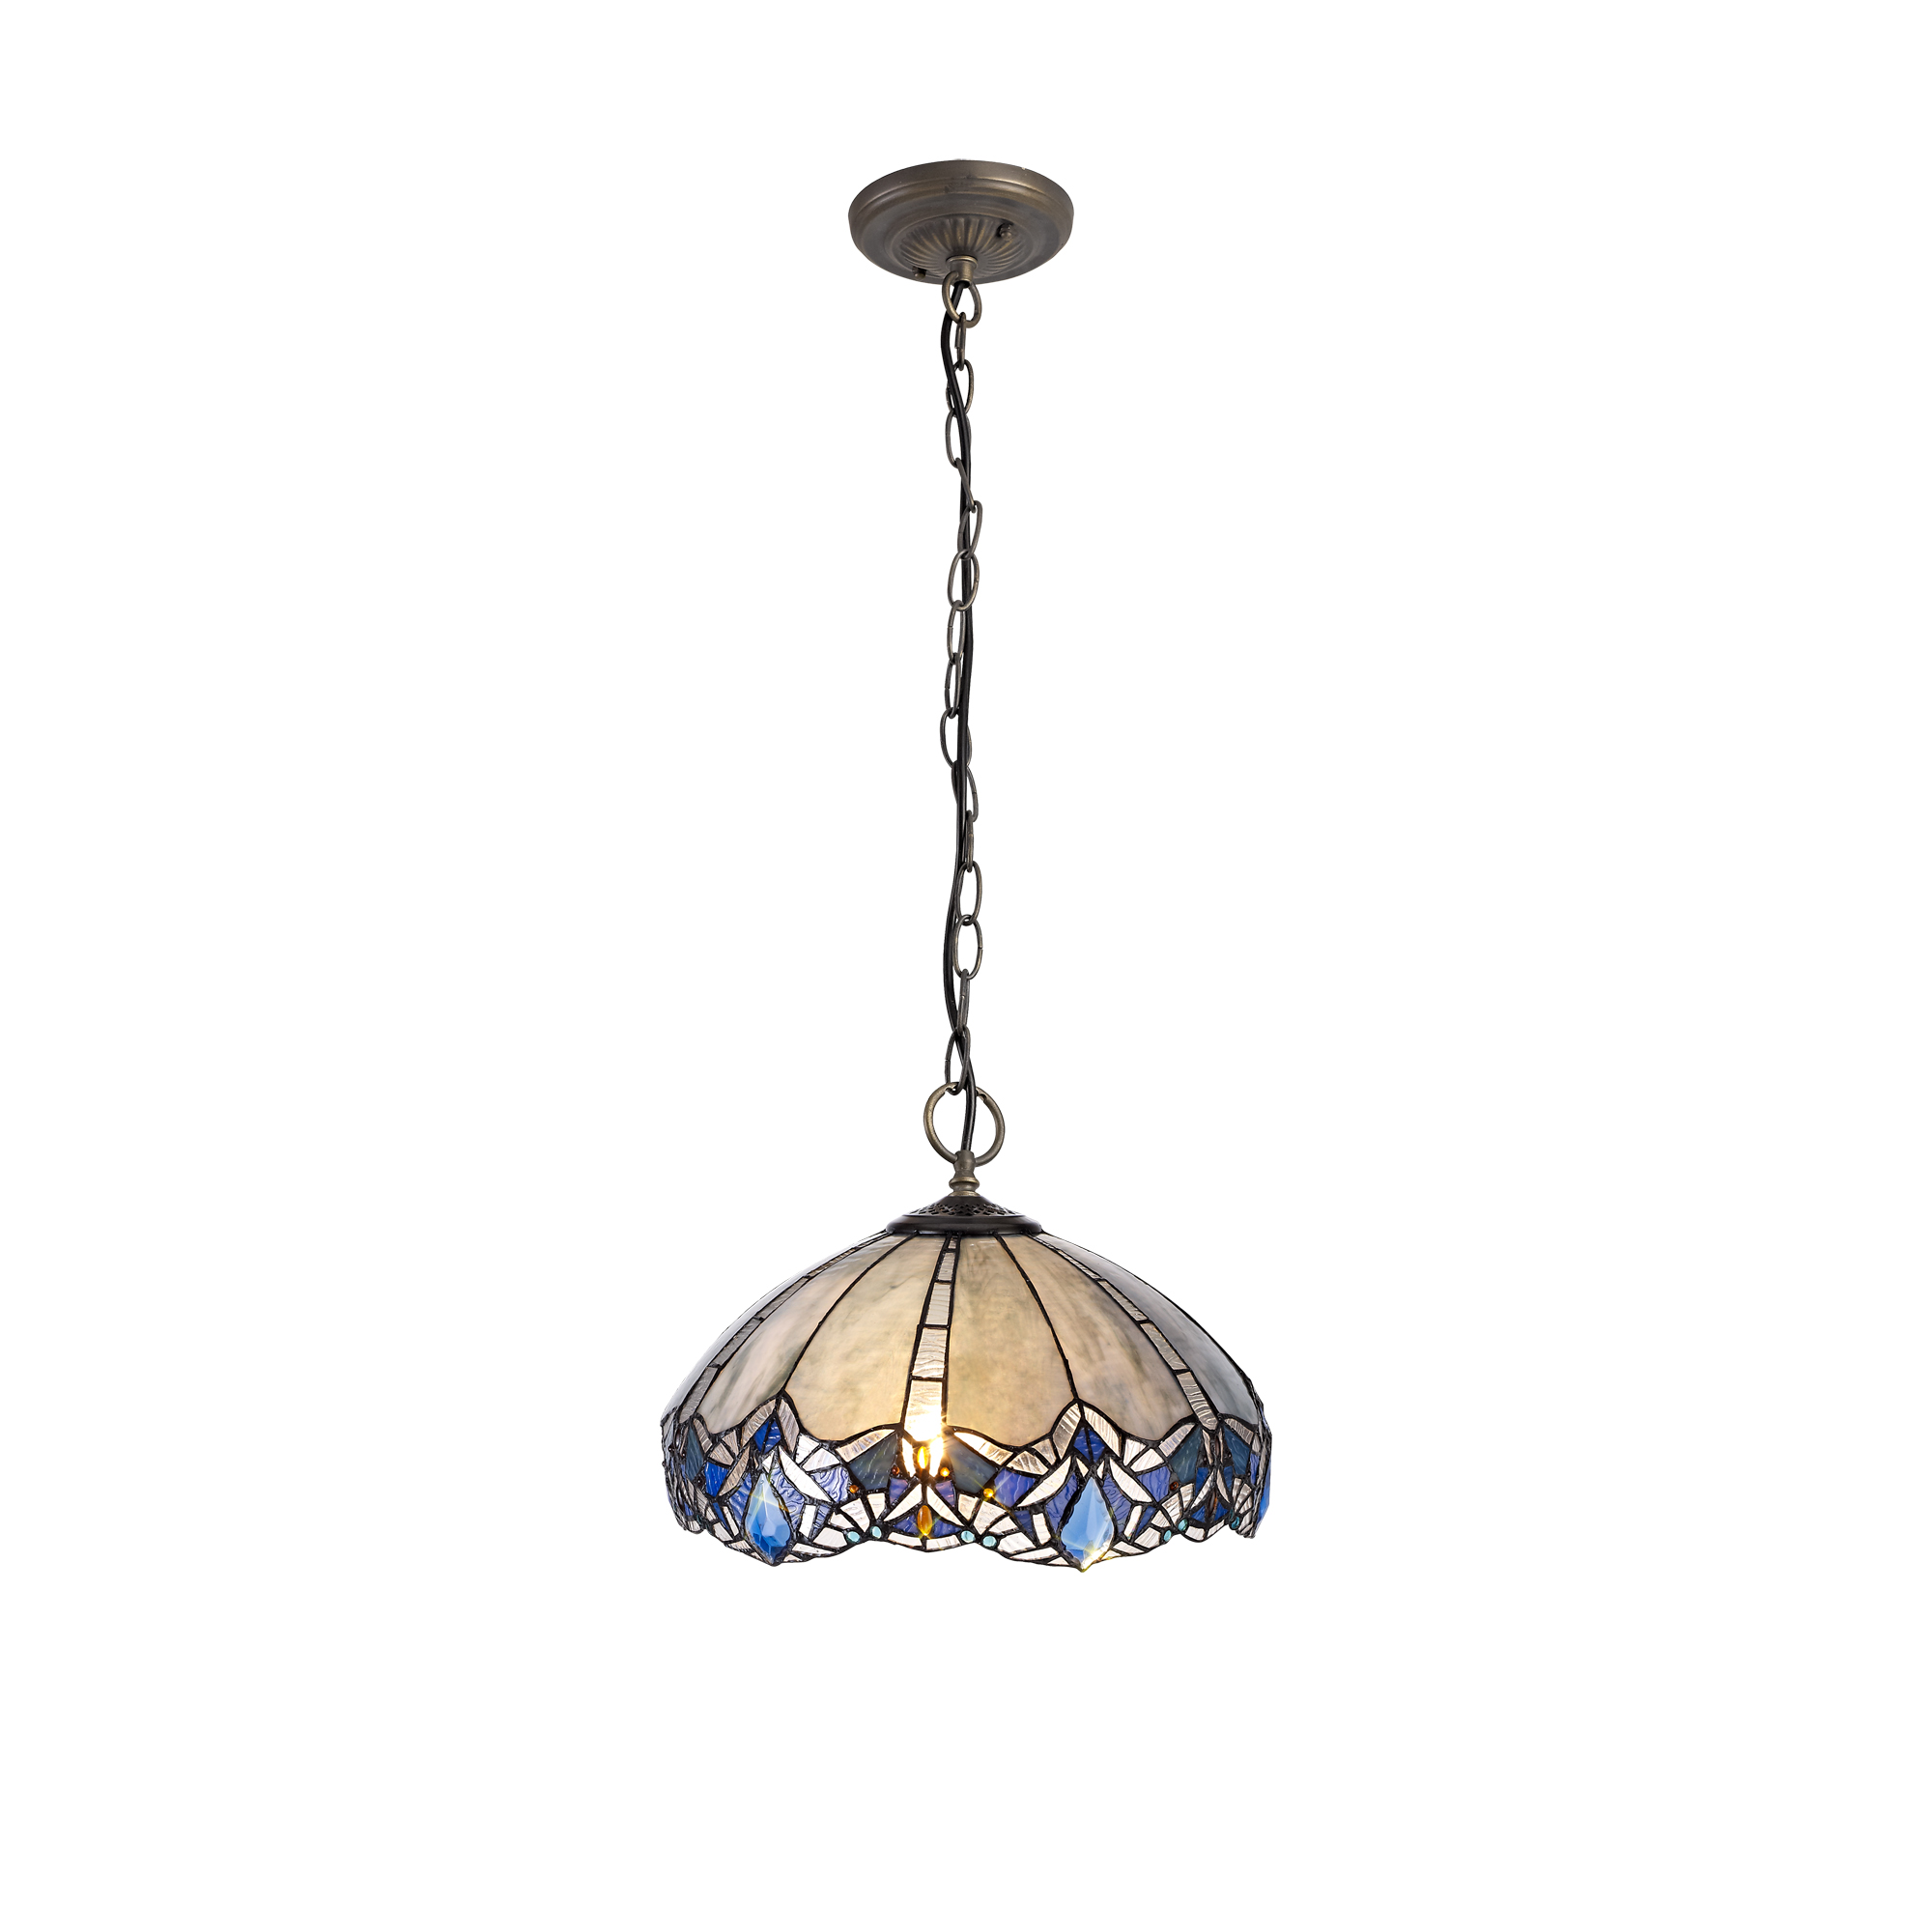 3 Light Downlight Pendant E27 With 40cm Tiffany Shade, Blue/Clear Crystal/Aged Antique Brass